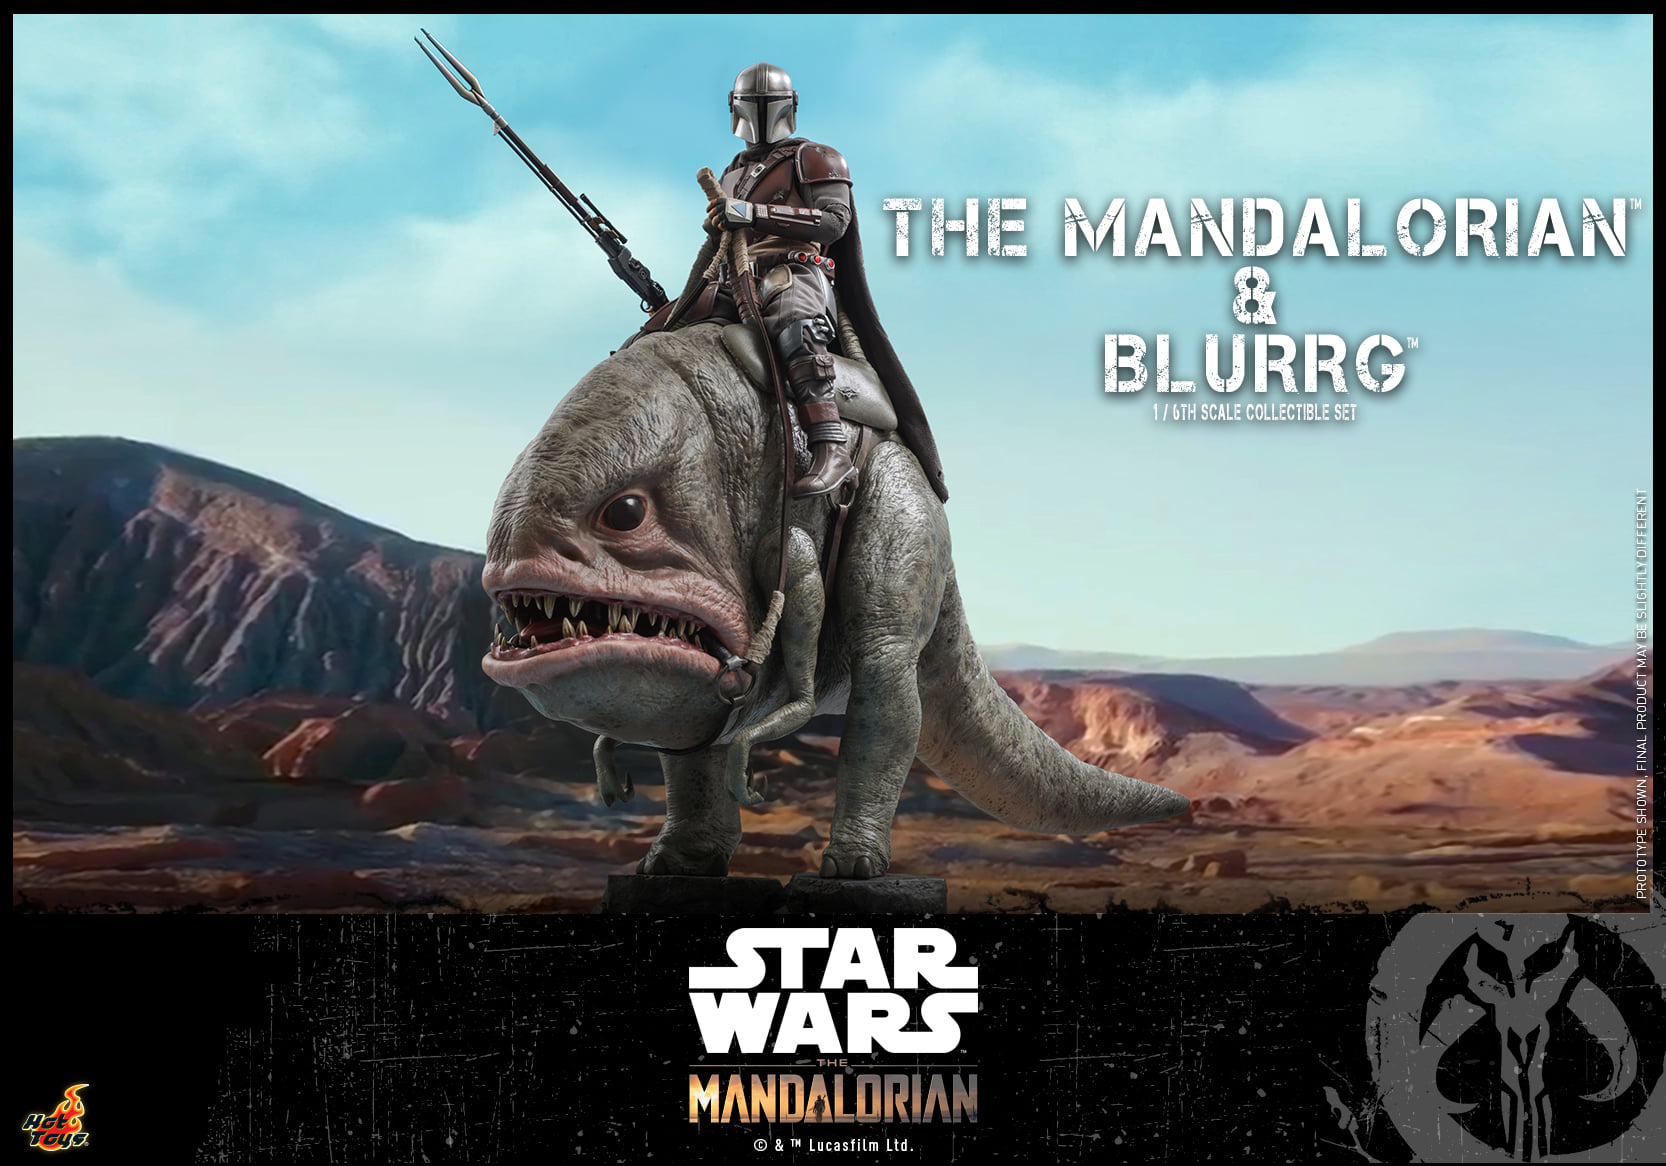 Pre-Order Hot Toys Star Wars The Mandalorian & Blurrg Set